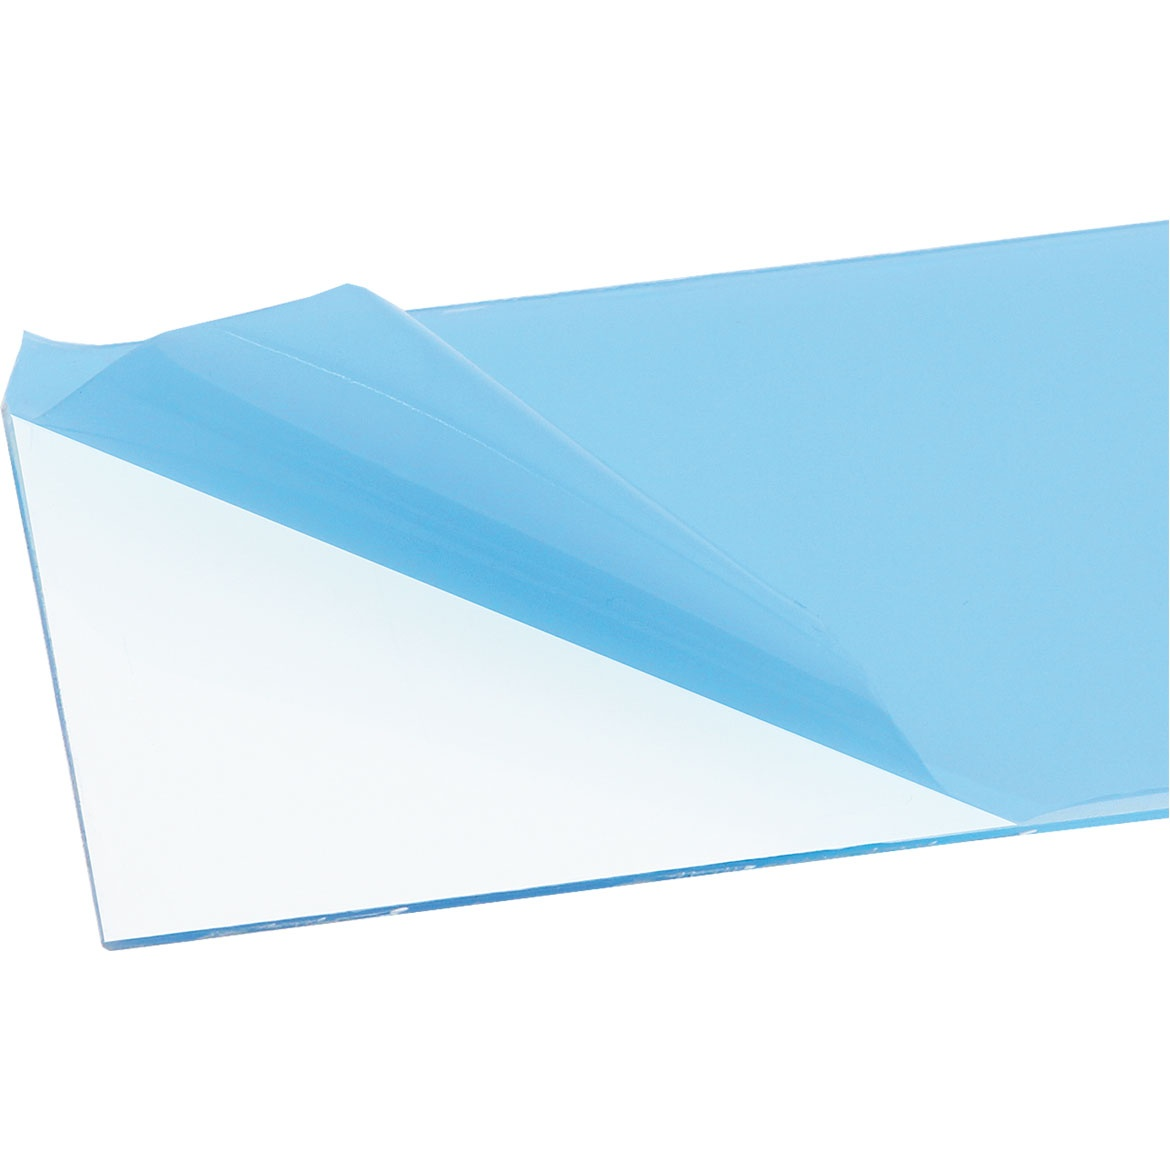 VIVAK-Platten transparent 0,5 mm ca.250 x 500 mm